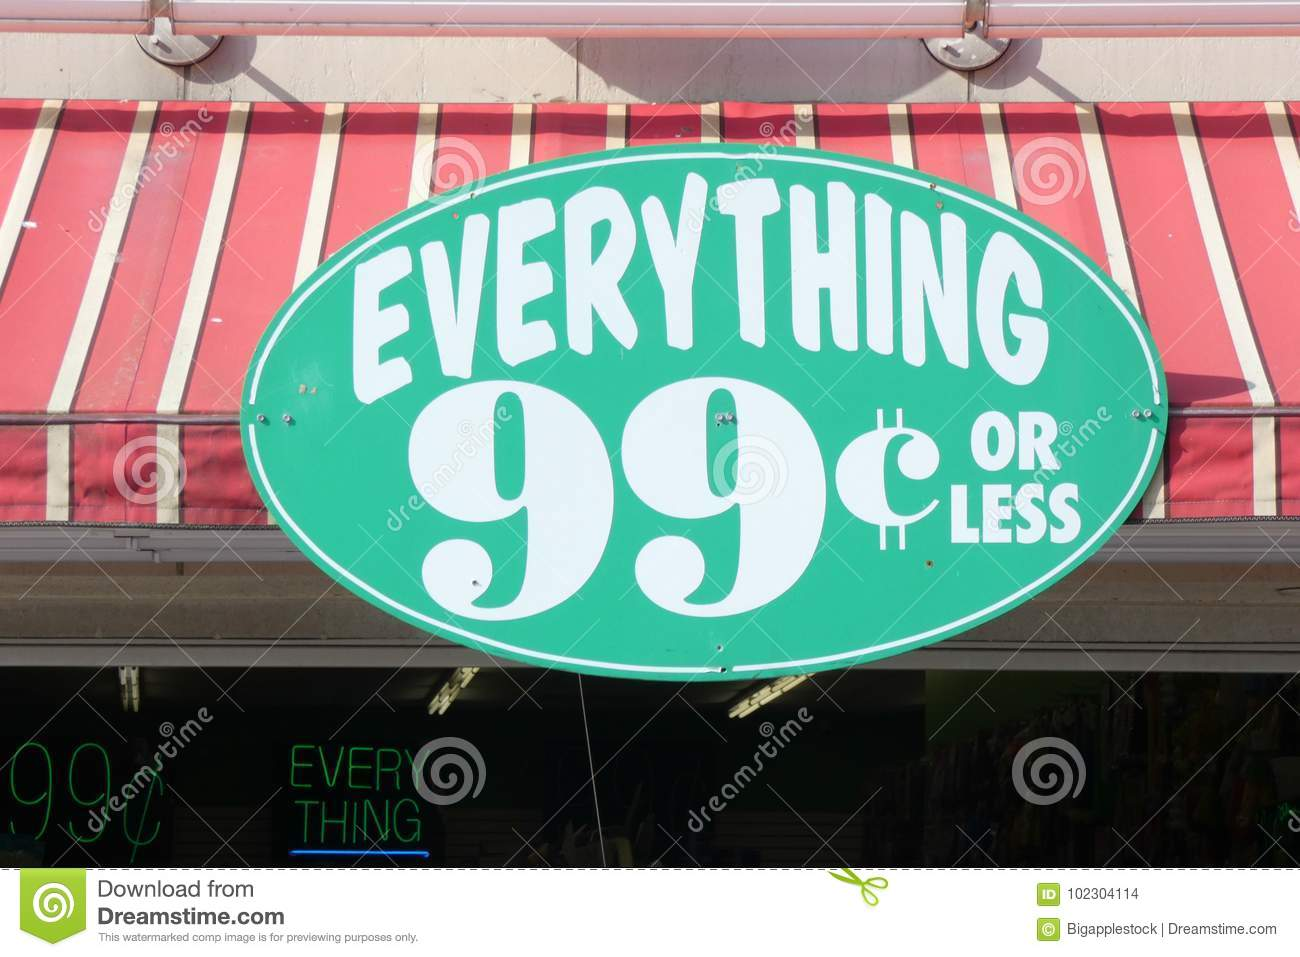 A Sign On Store That Says Everything Retails For 99 Cents Or Less